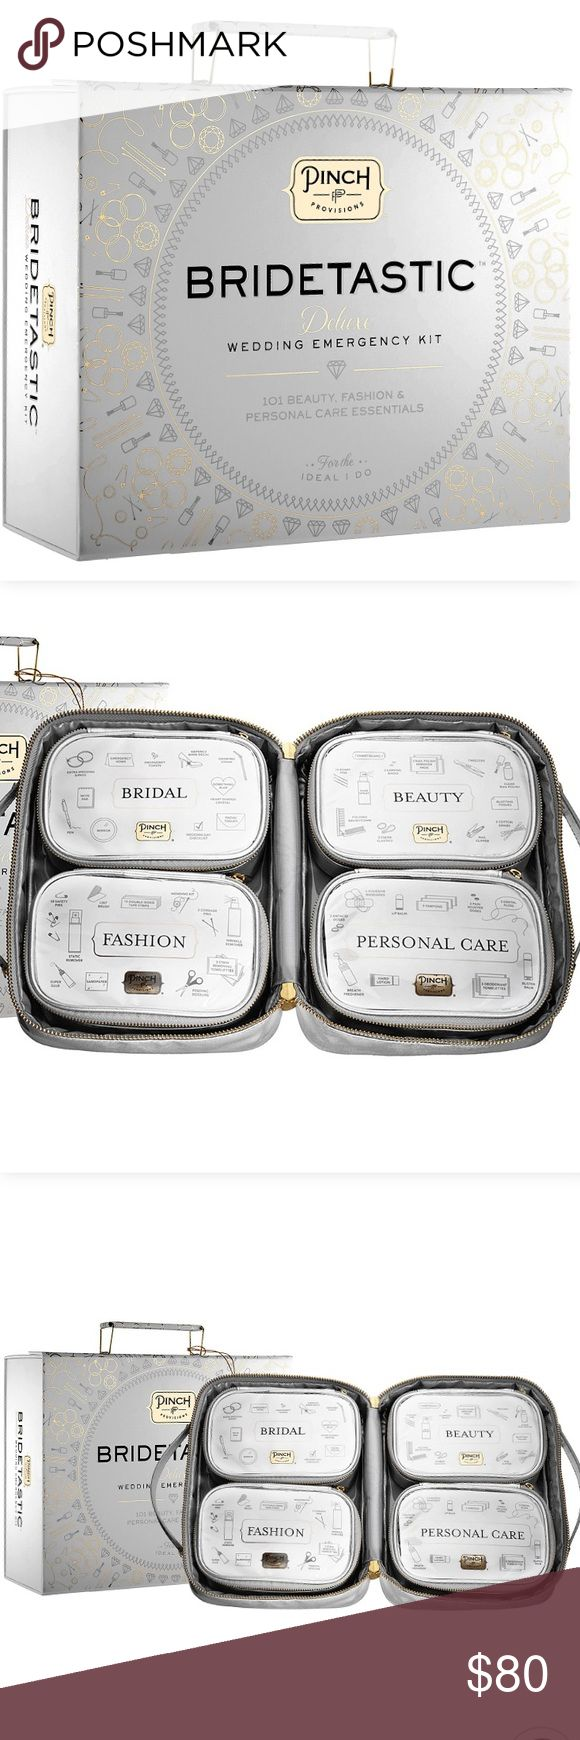 Bridetastic™ Deluxe Wedding Emergency Kit An exclusive wedding day survival kit that contains 101 solutions for beauty blunders, fashion faux pas, and personal care predicaments. Pinch Provisions Other